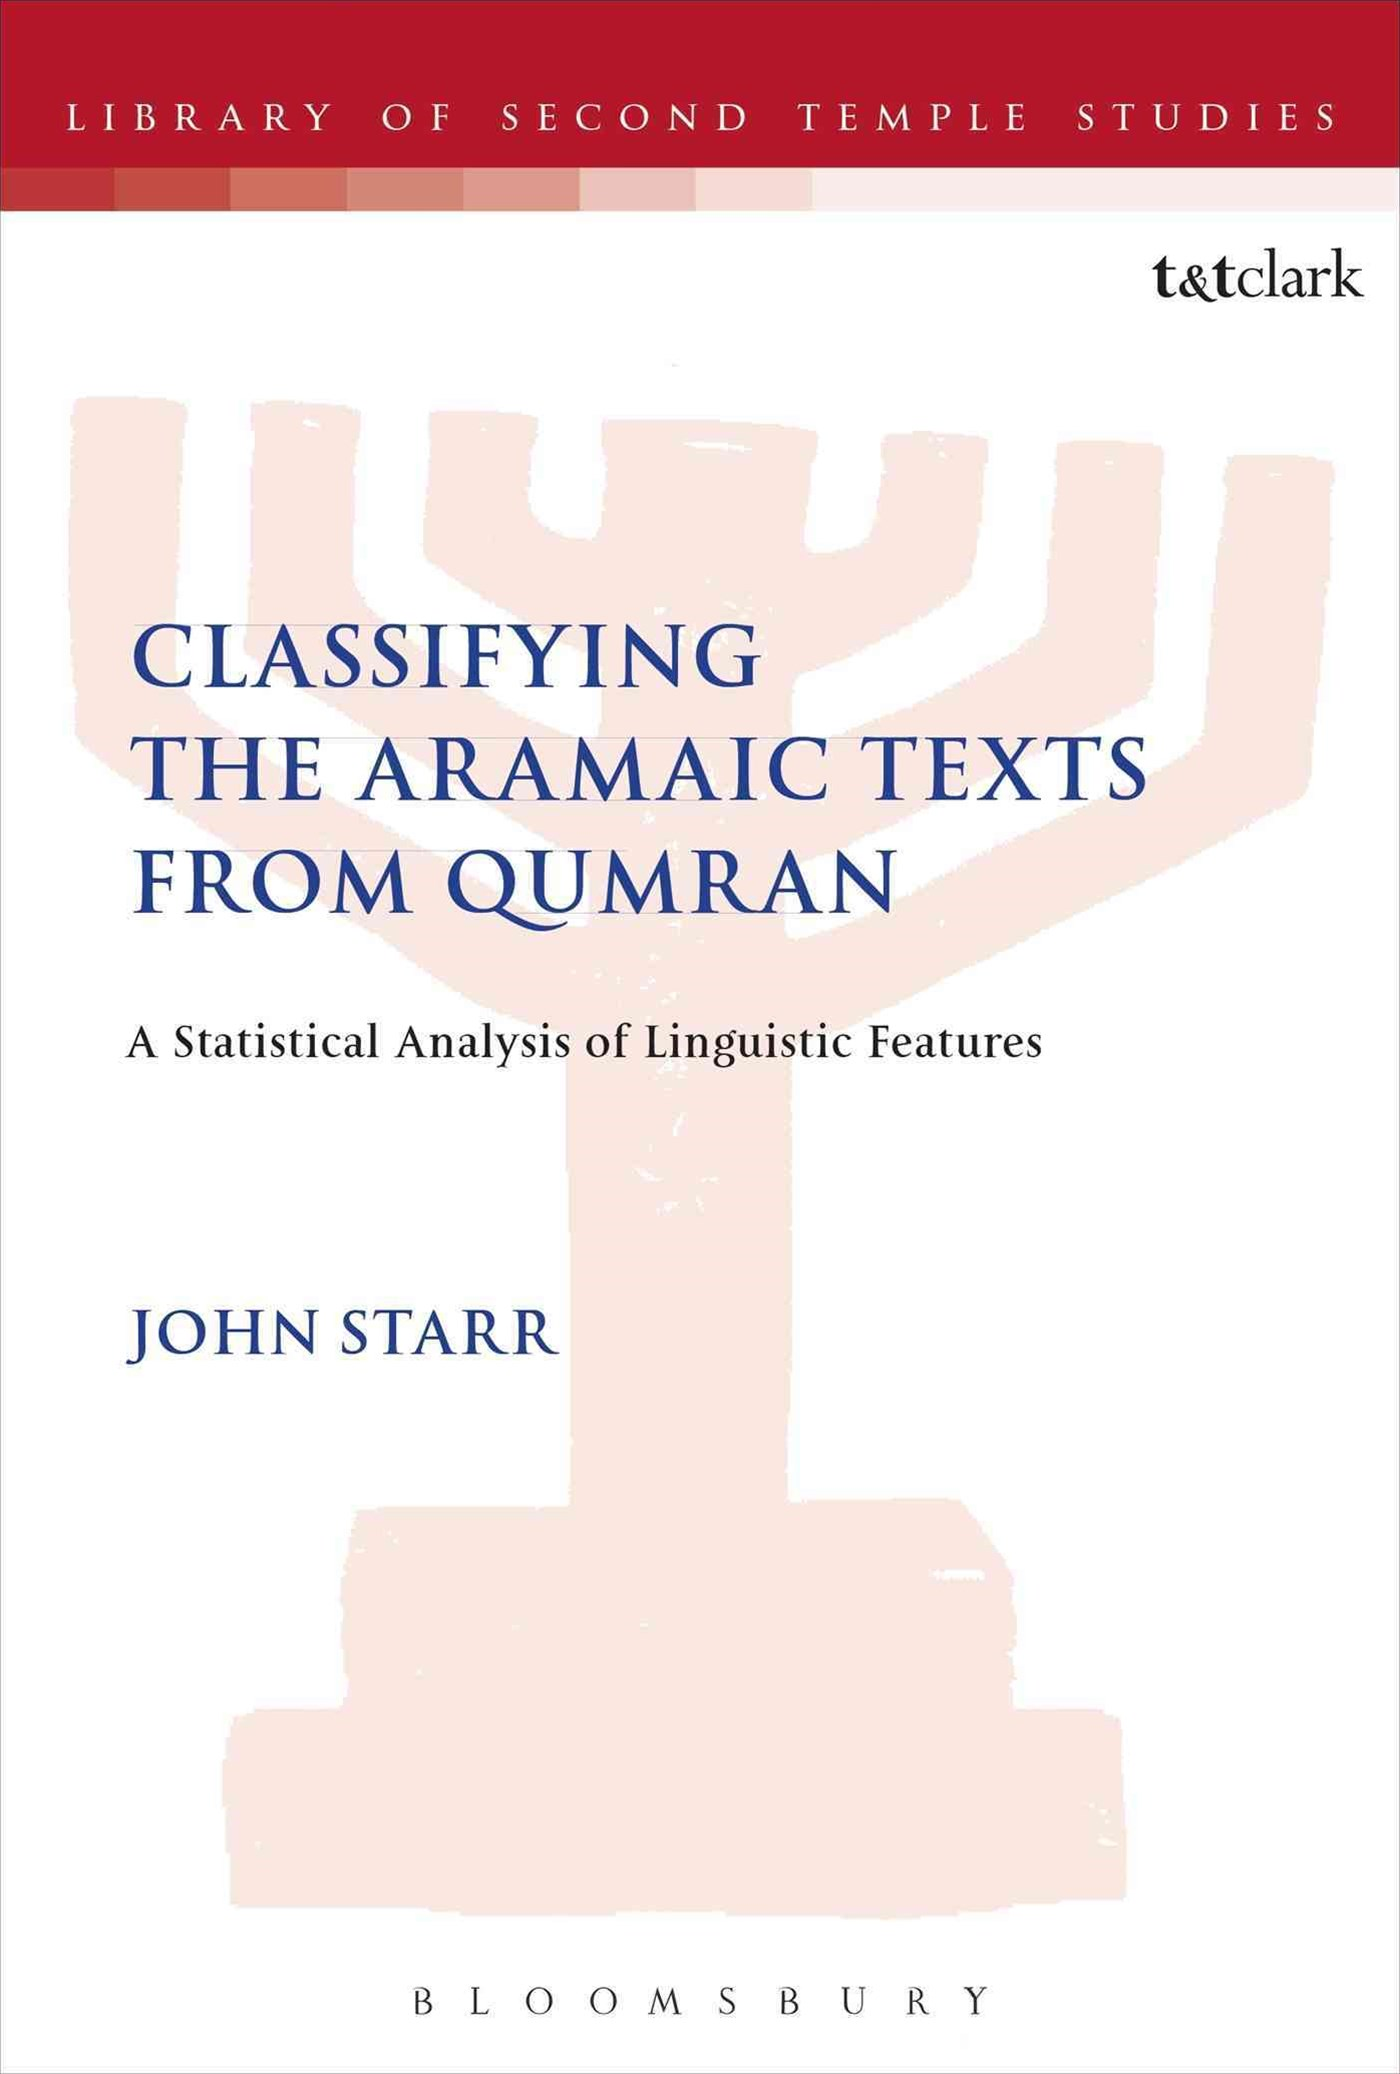 Classifying the Aramaic Texts from Qumran